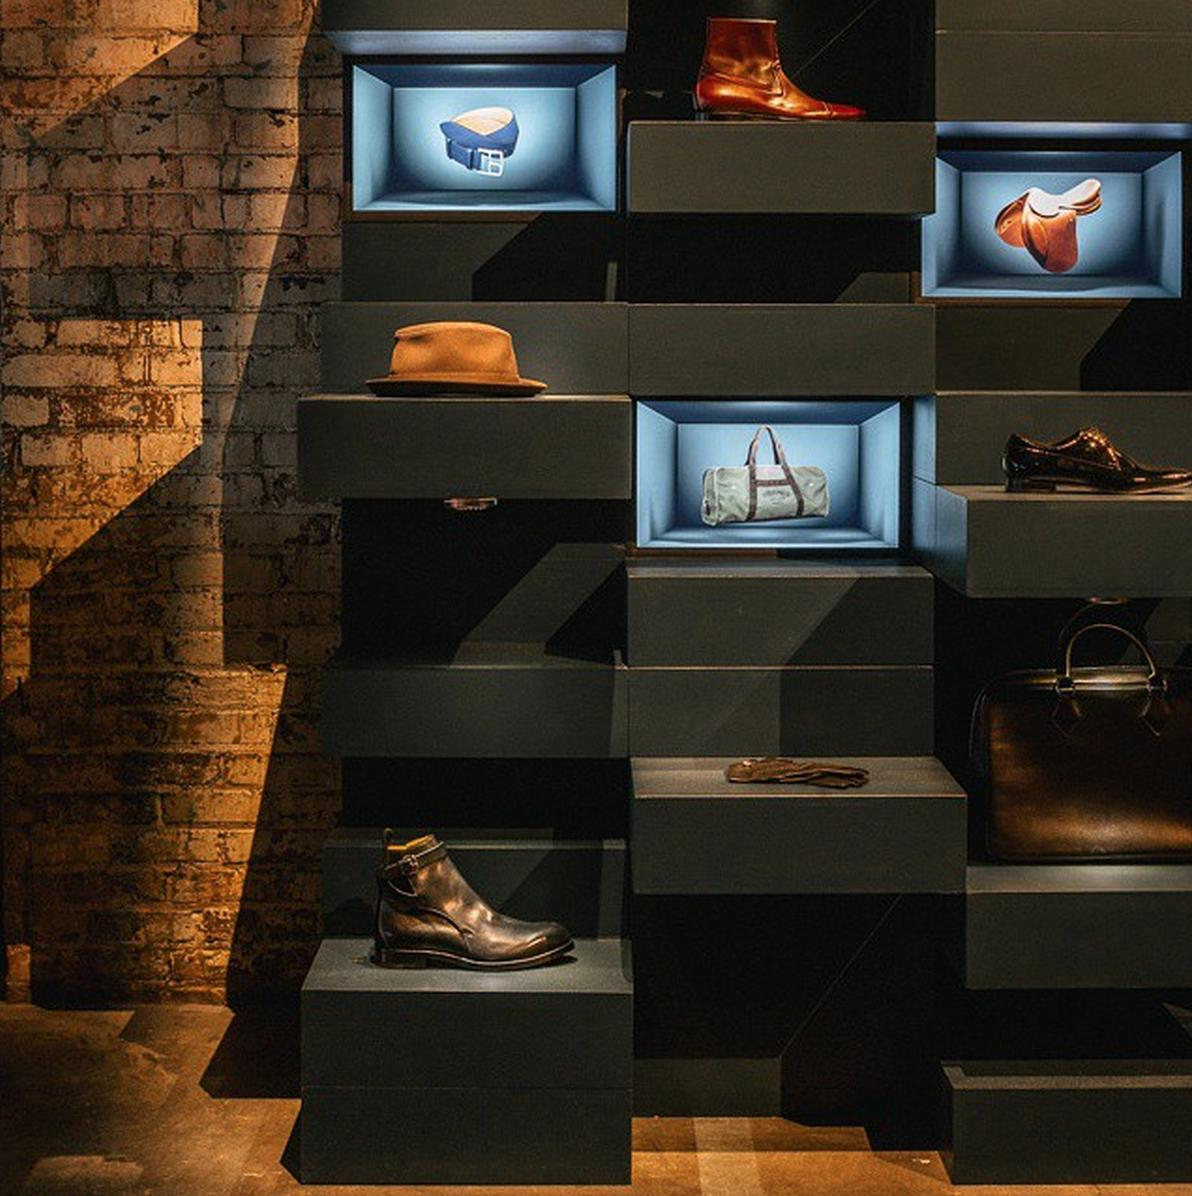 How Hermès Has Made Its Luxury Goods Exclusive and Widely Available